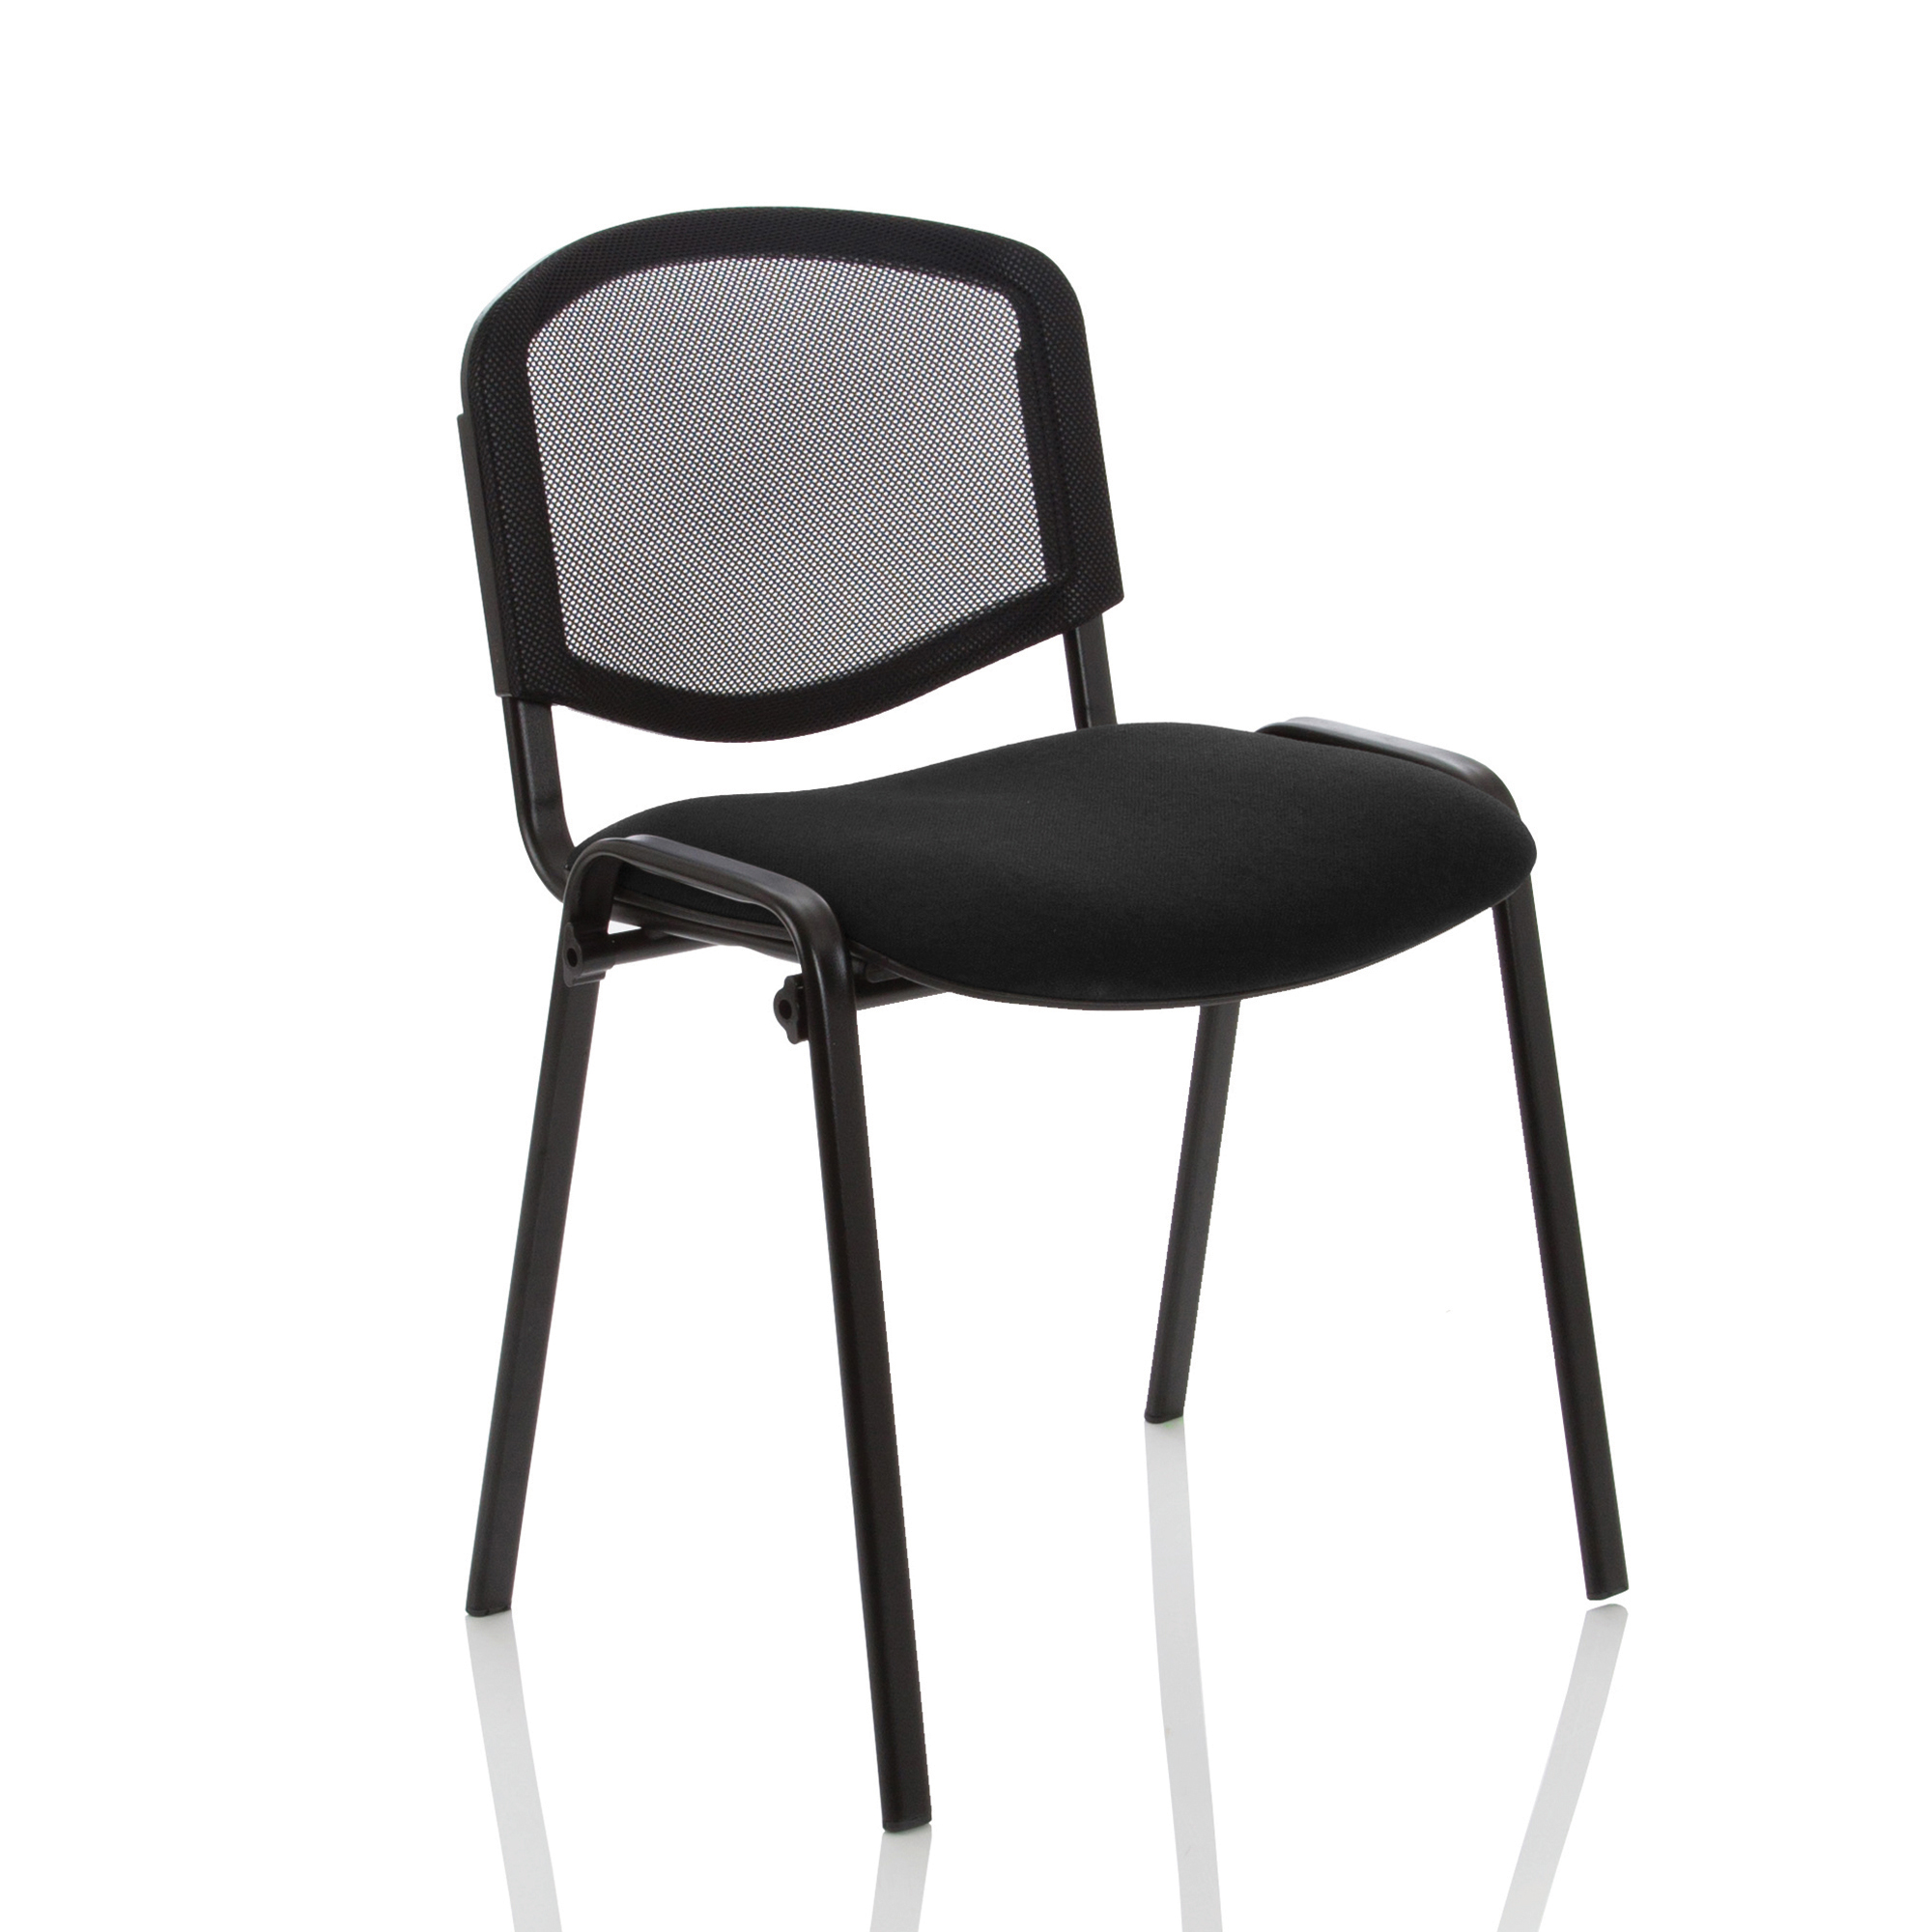 Auditorium or stadium or special use seating Trexus ISO Stacking Chair Without Arms Mesh Back Black Fabric Black Frame Ref BR000060